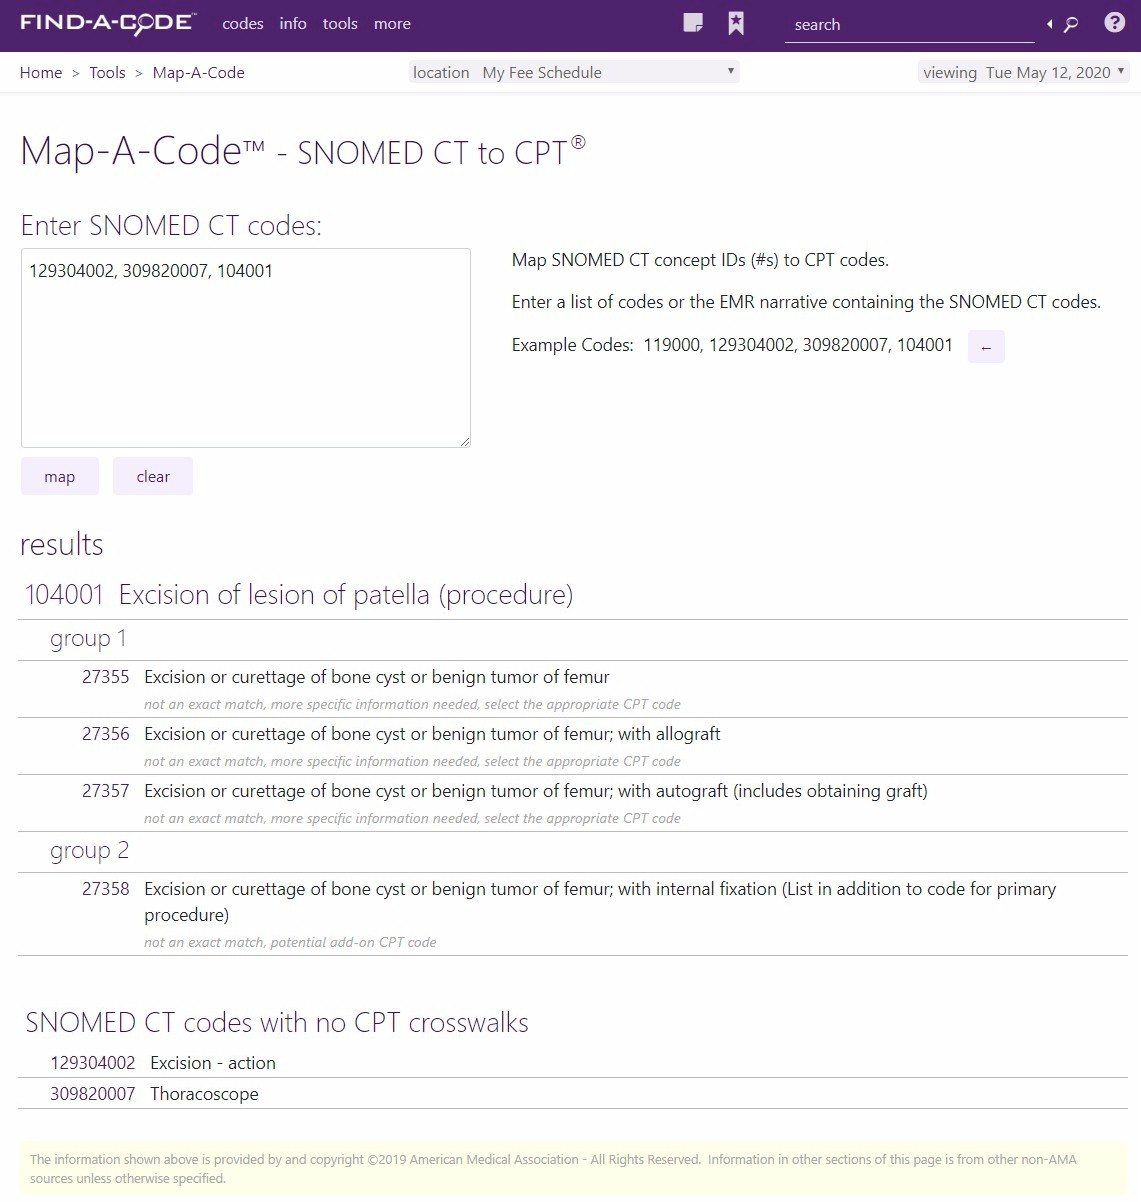 Map-A-Code tool for SNOMED CT to CPT crosswalks